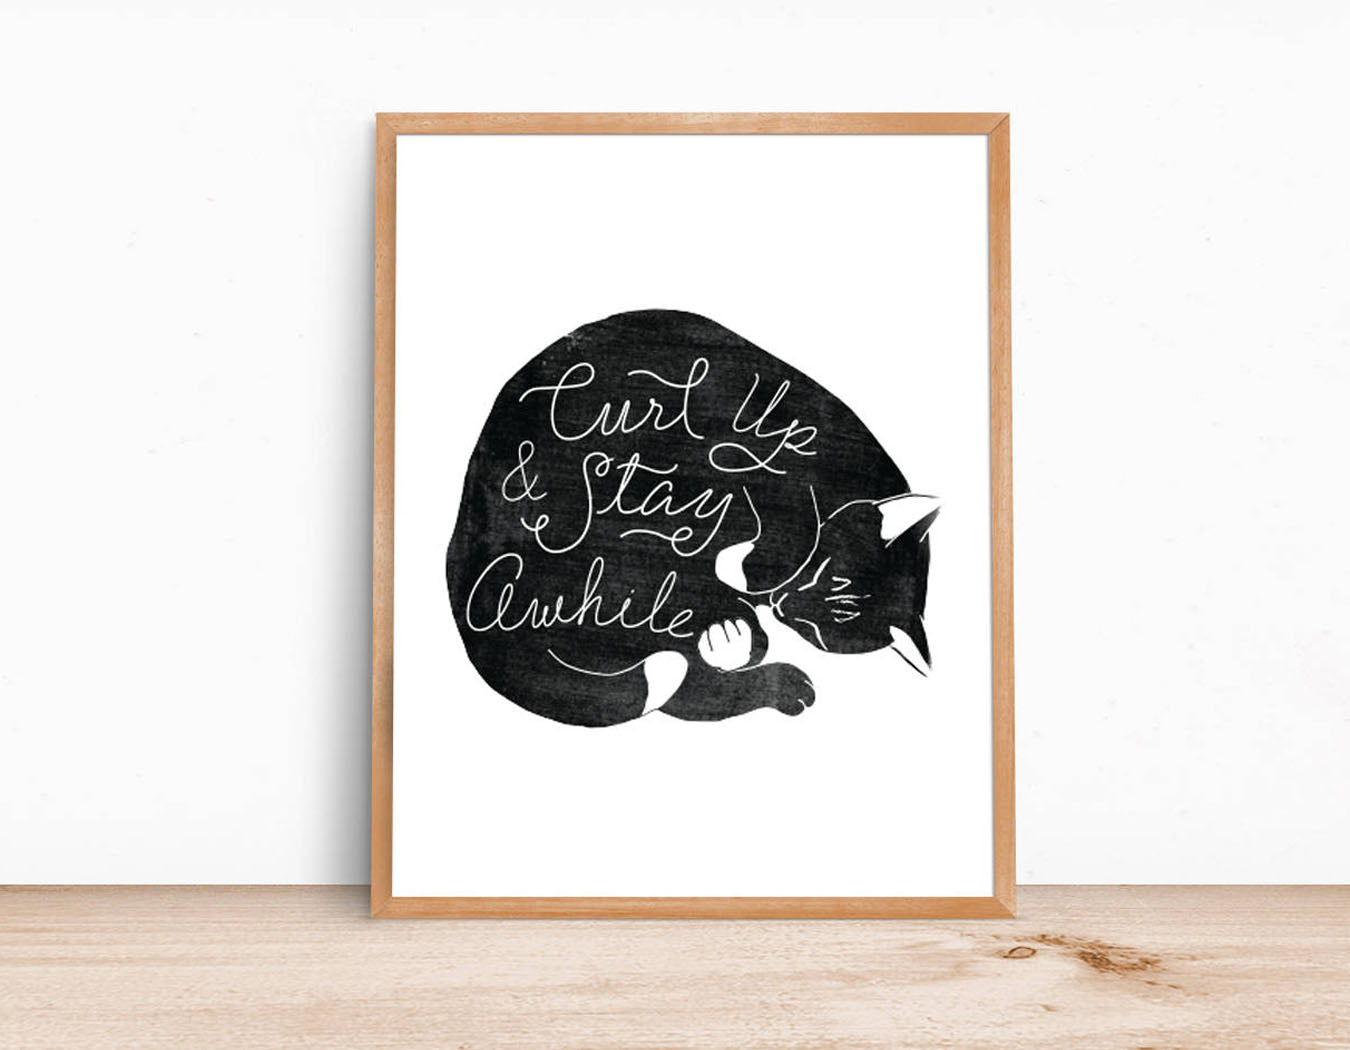 CURL UP & STAY AWHILE PRINT